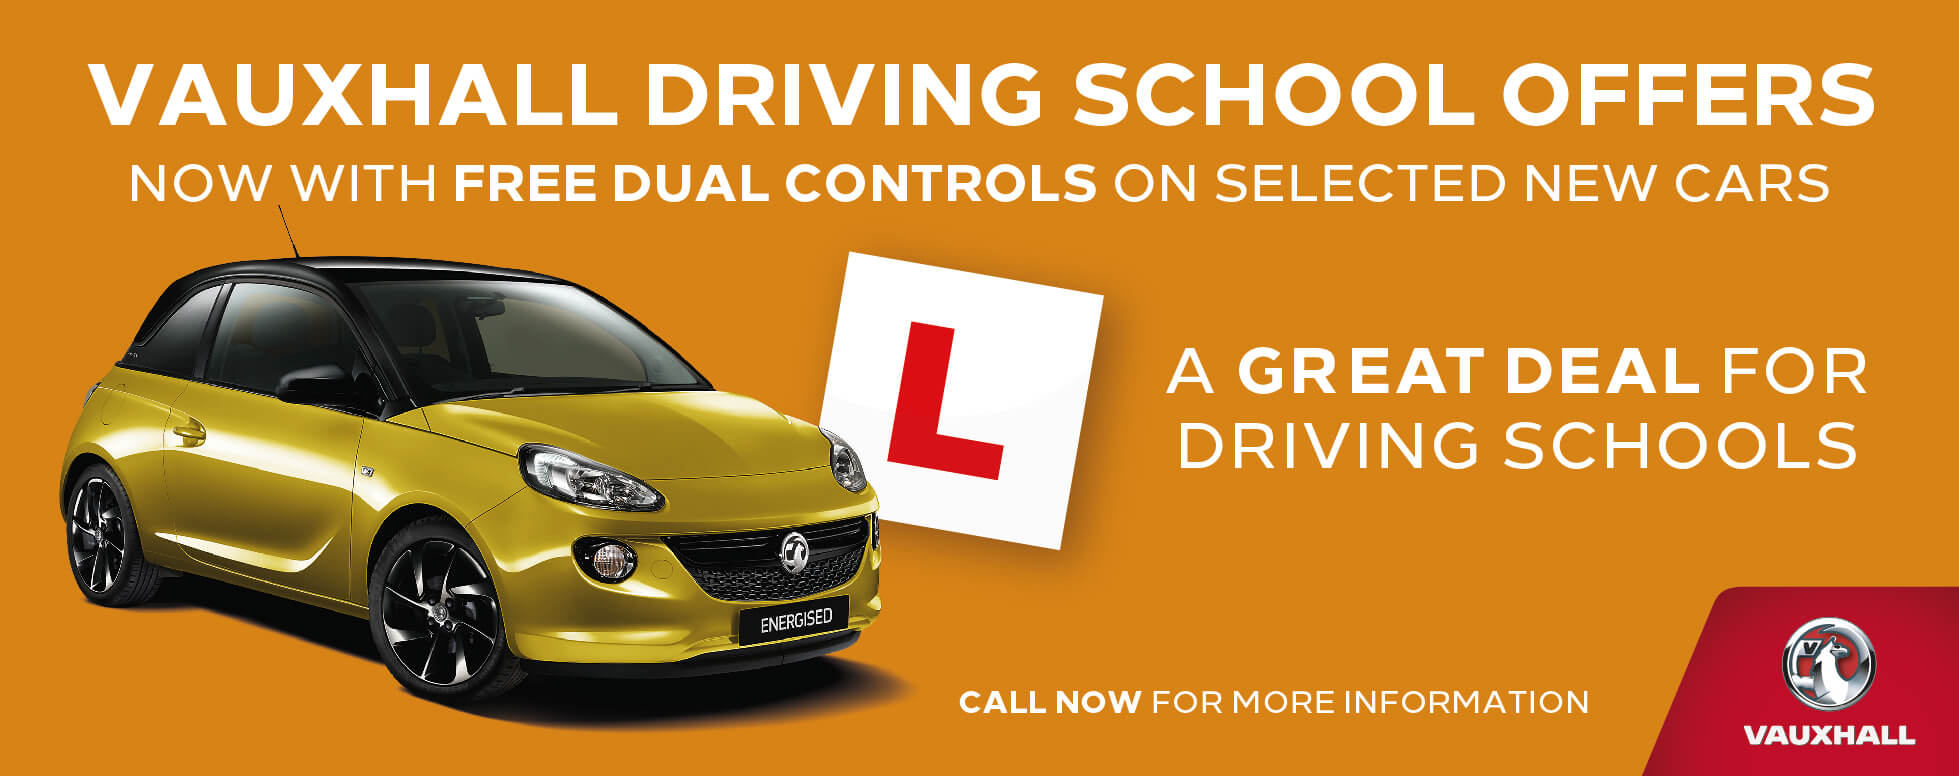 Vauxhall Driving School BB